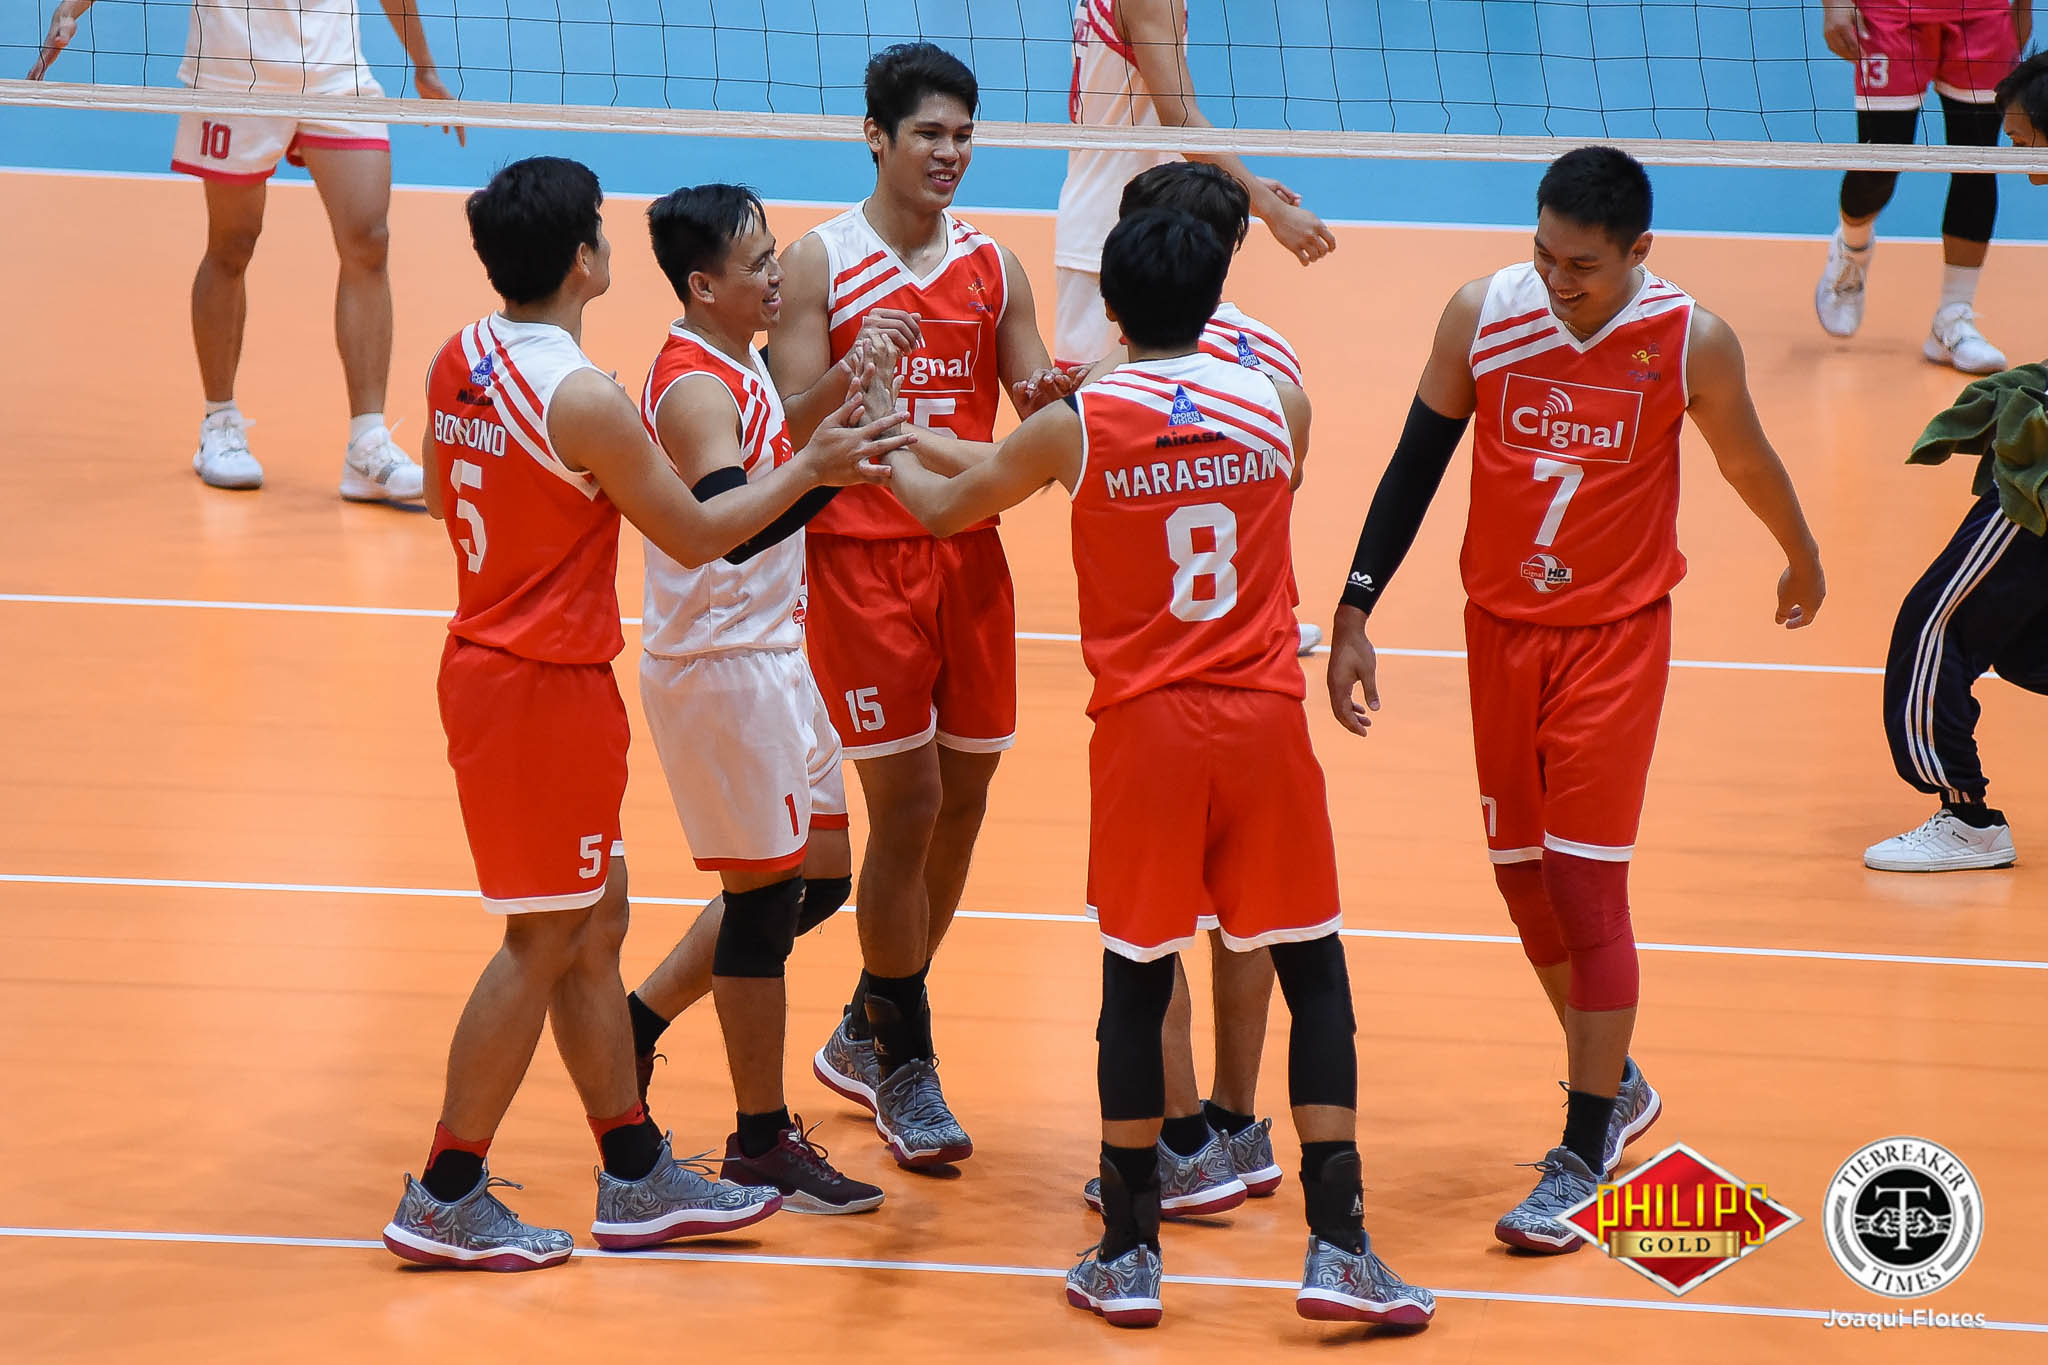 PVL Men Cignal vs. Vice – Espejo-8986